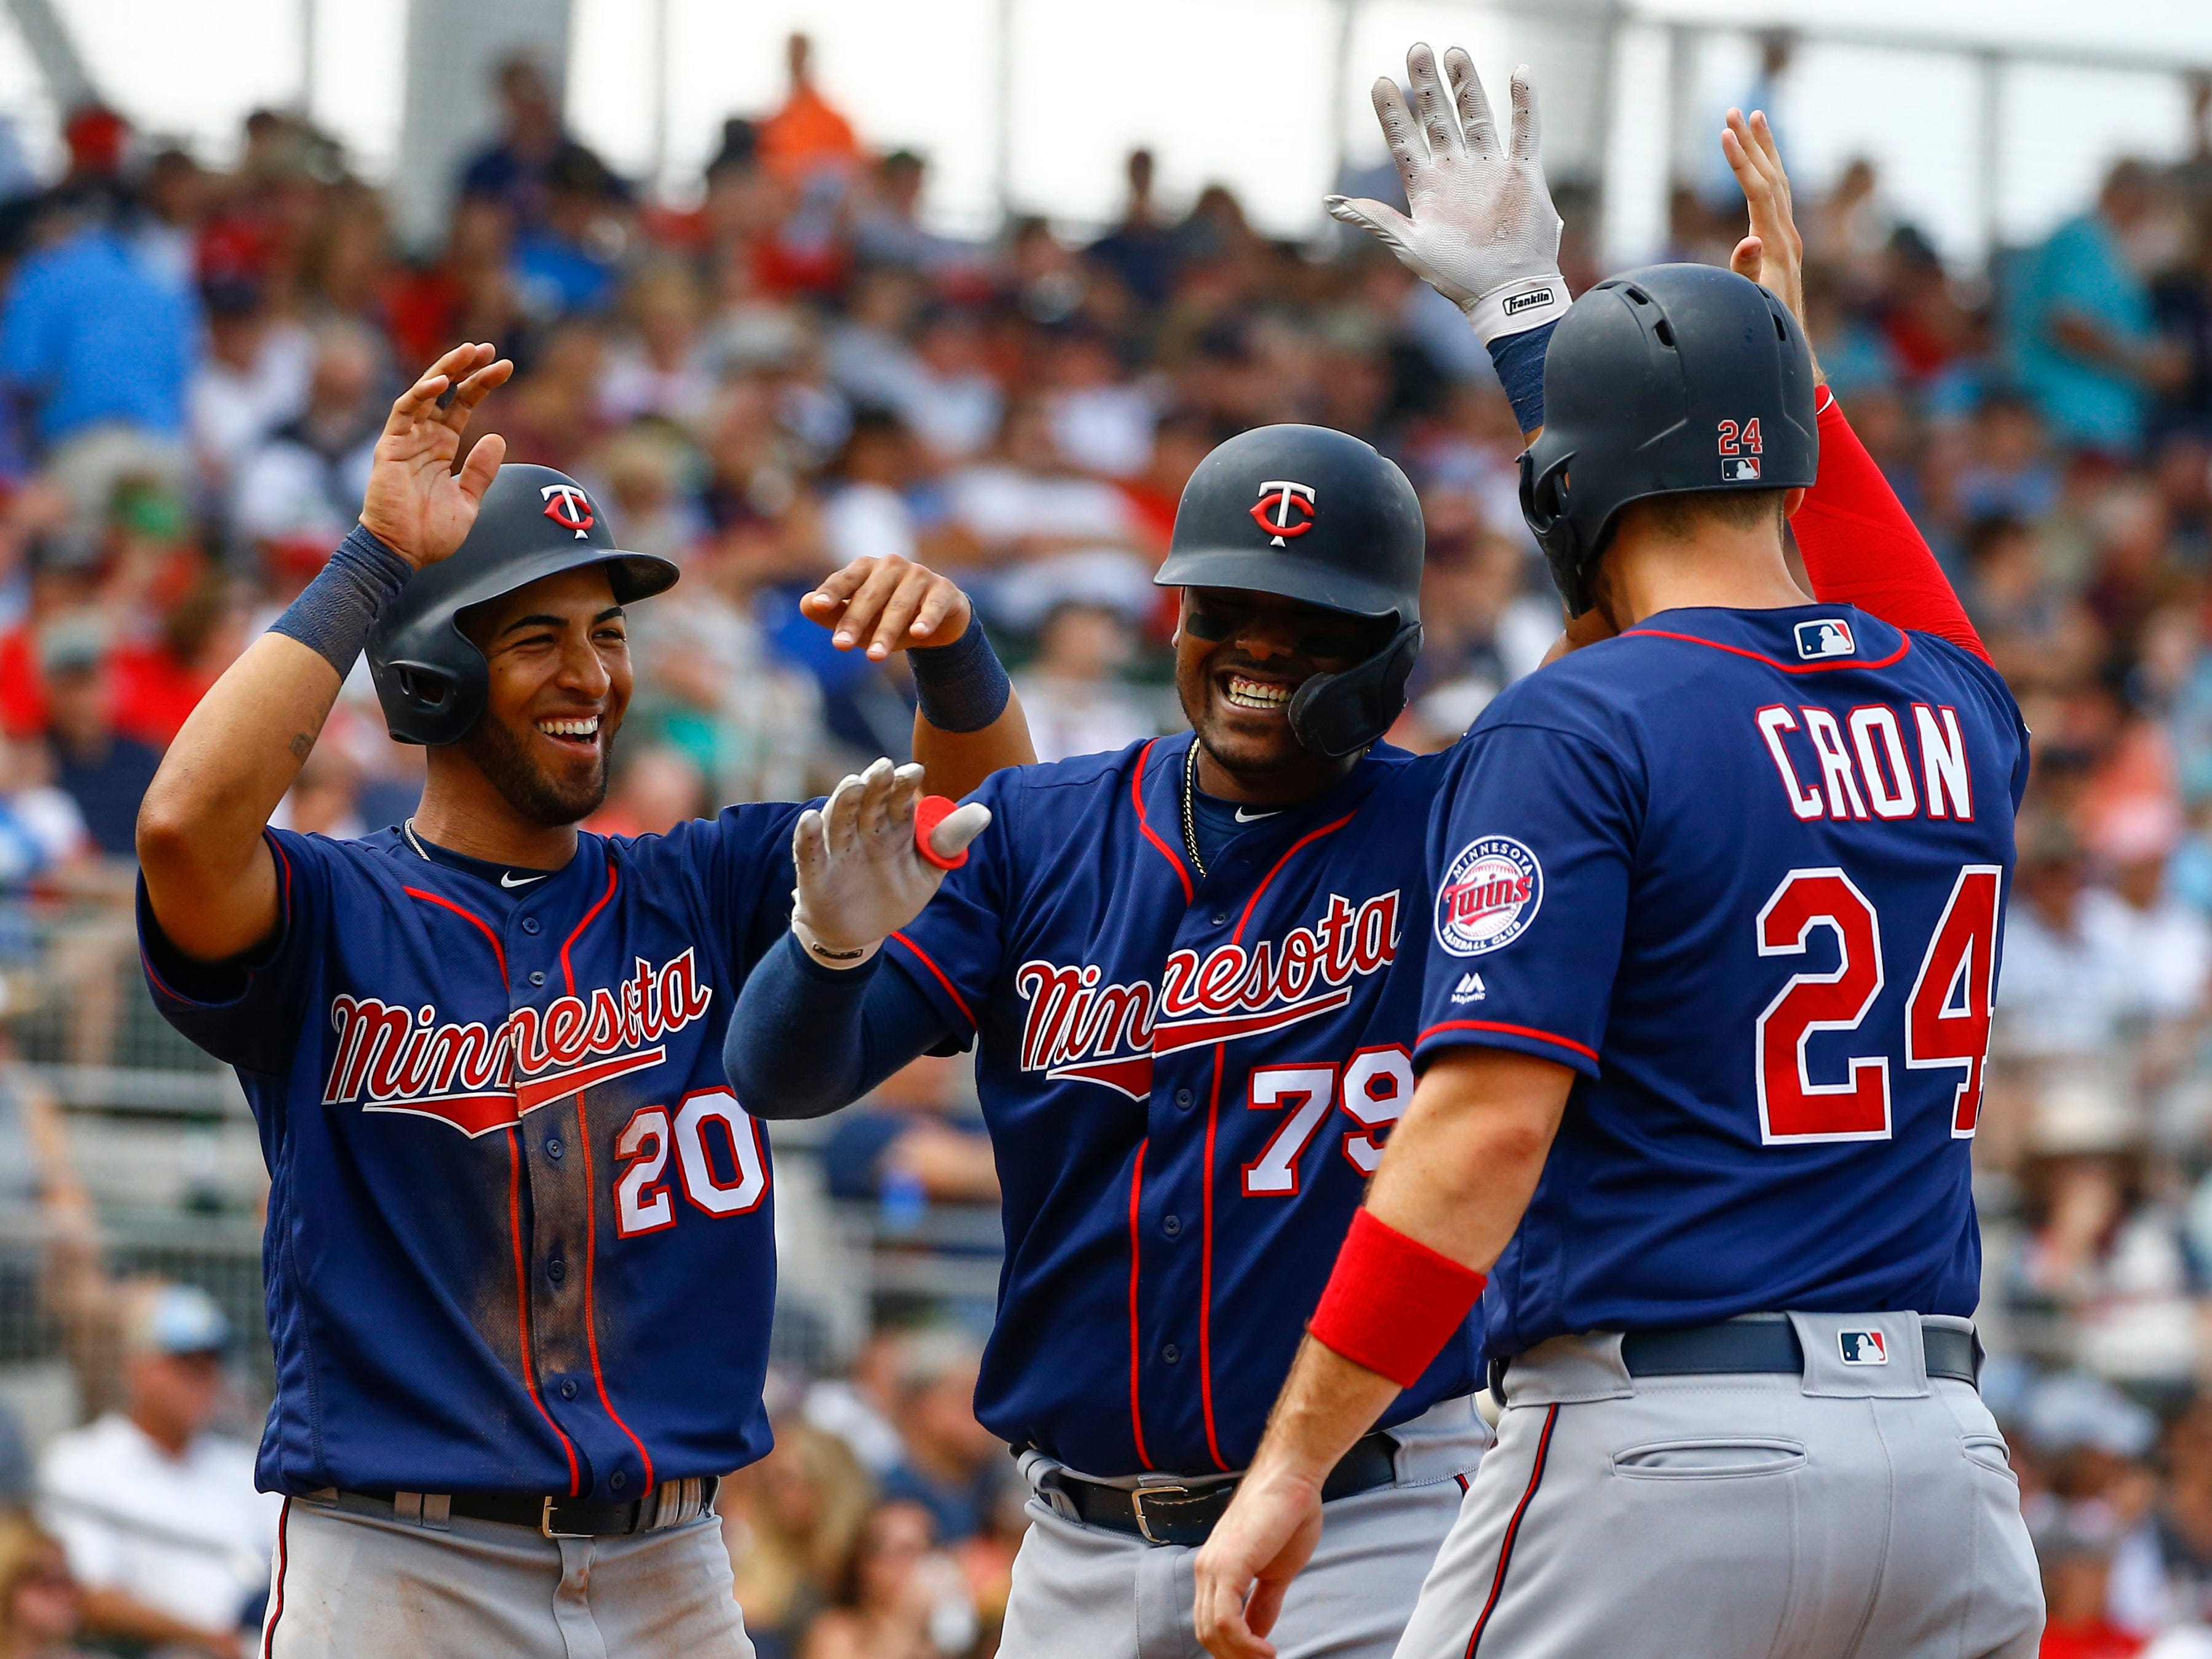 March 13: Twins catcher Brian Navarreto celebrates with teammates after hitting a home run against the Red Sox.